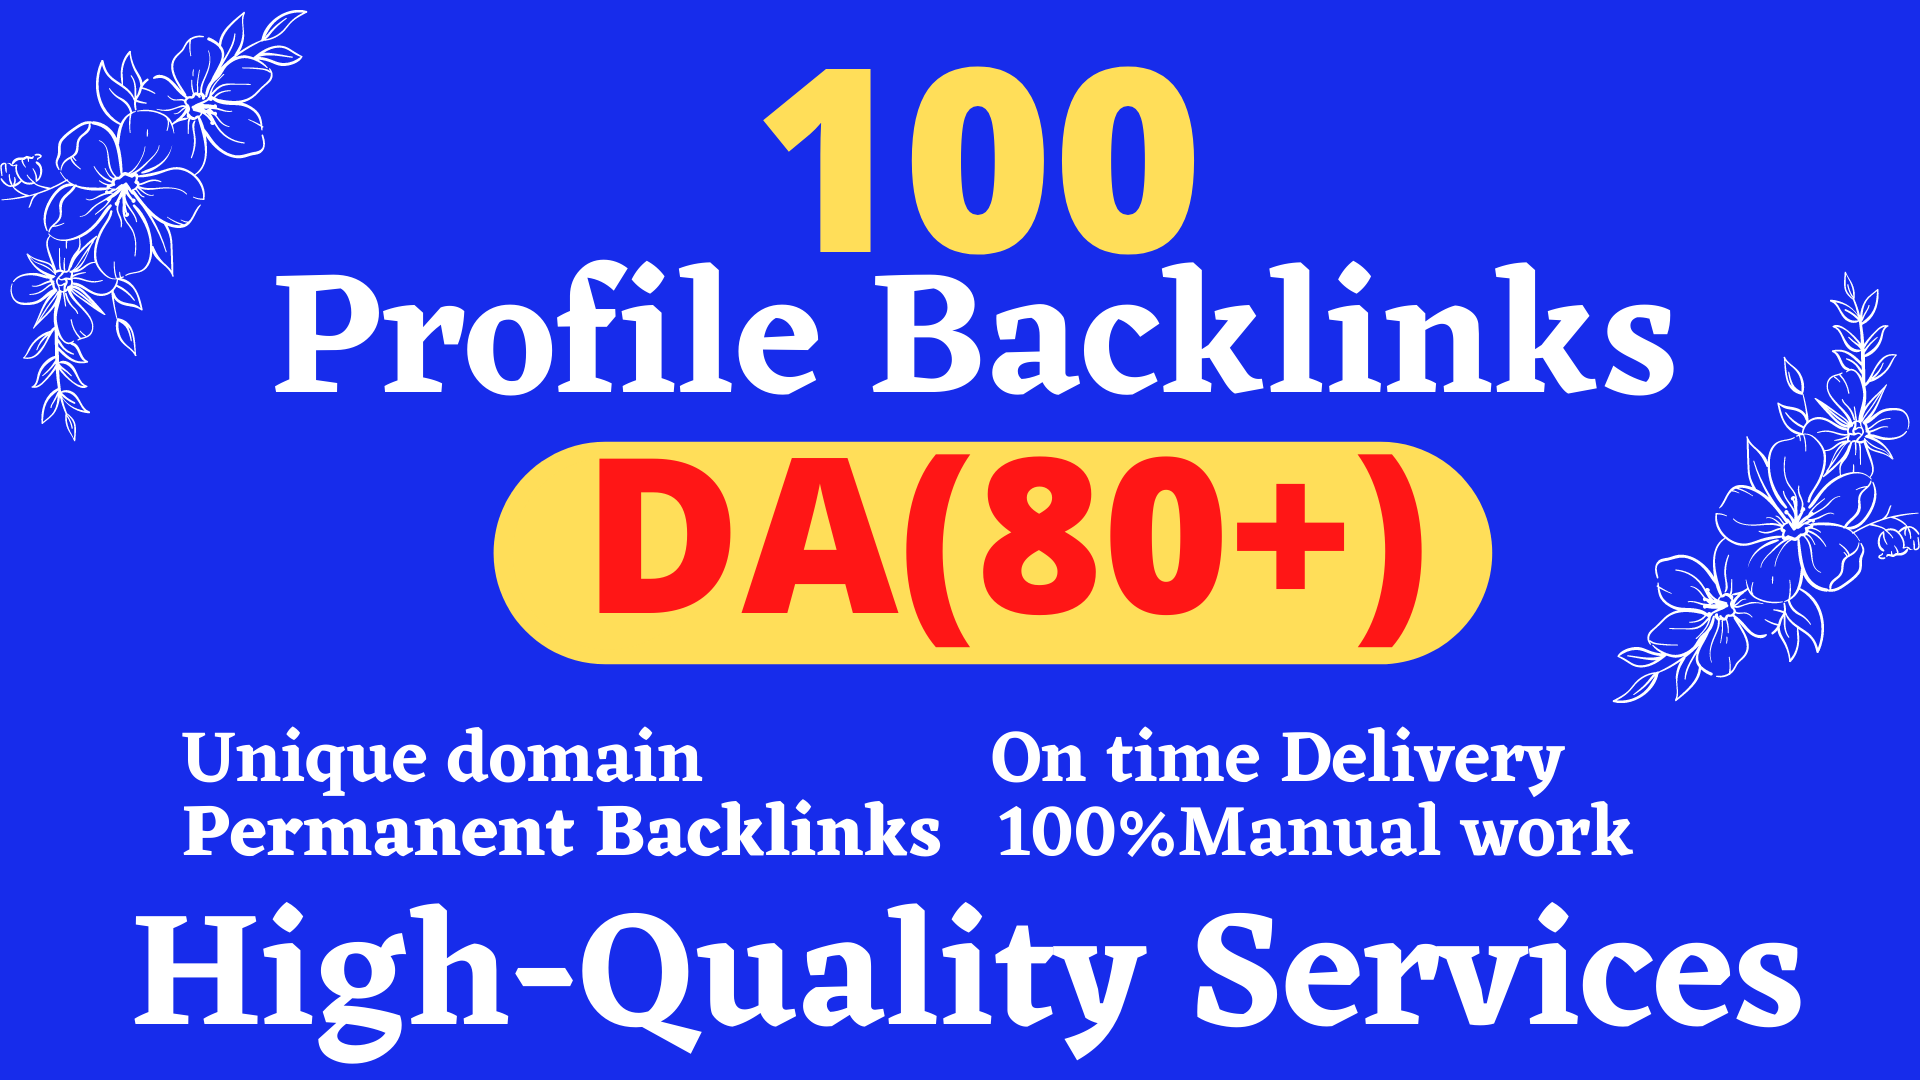 Manually create 100 TOP BRAND 80+DA Profile Backlinks